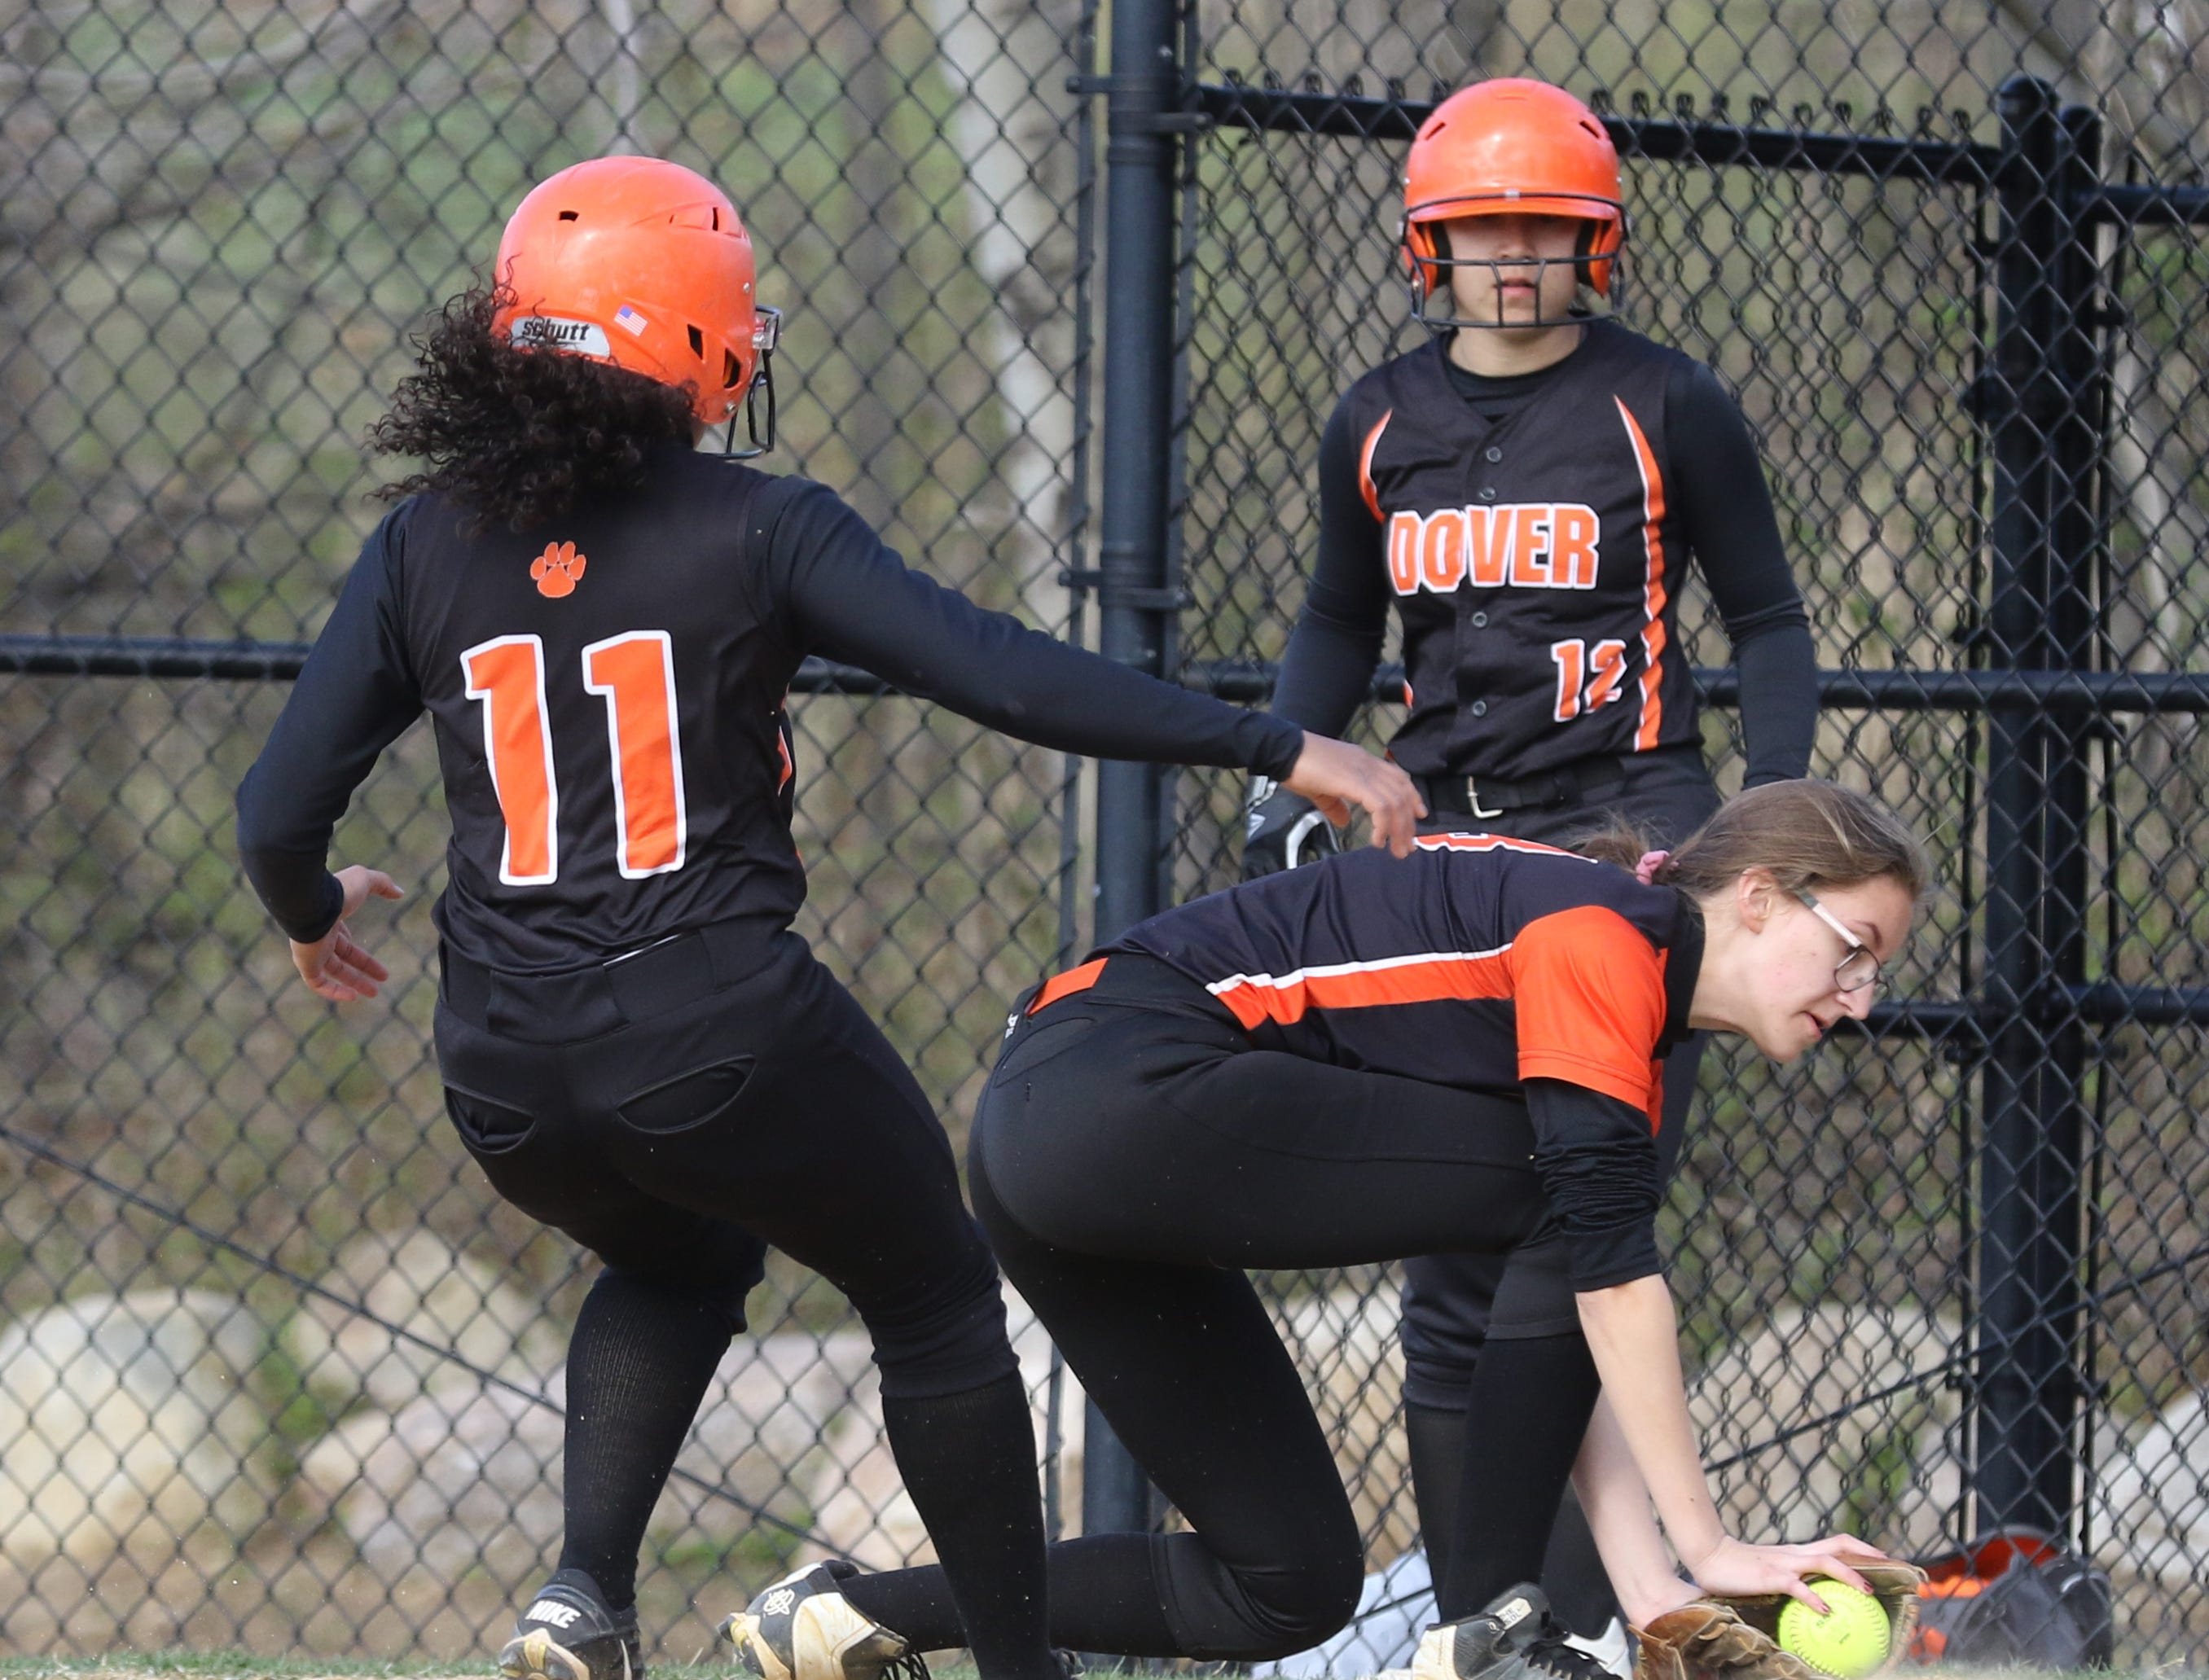 Chelsea Estacio of Dover can't back to first base in time to get caught in a double play as Hackettstown first baseman Katie Vreeland picks up the ball to make the out.